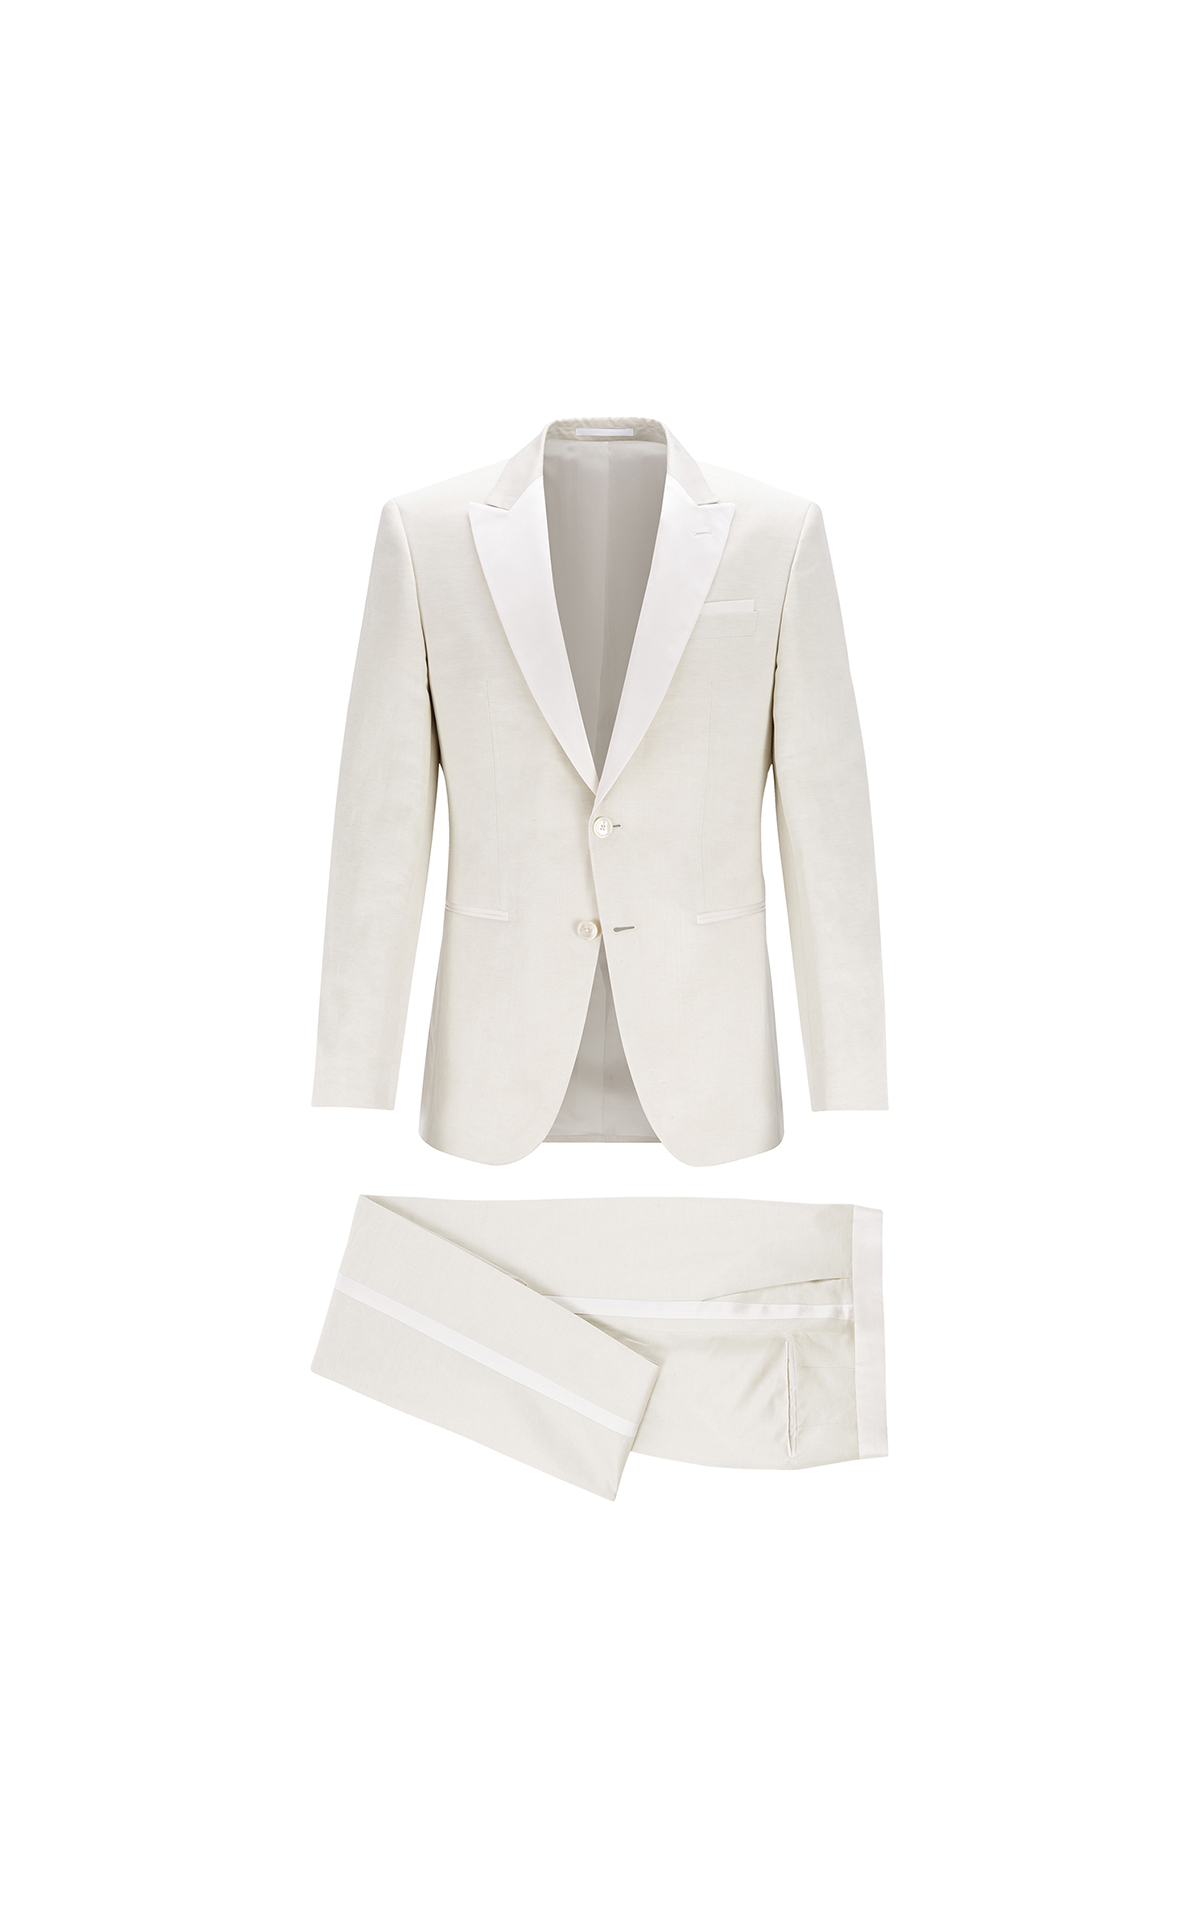 BOSS Men's slim-fit evening suit at The Bicester Village Shopping Collection